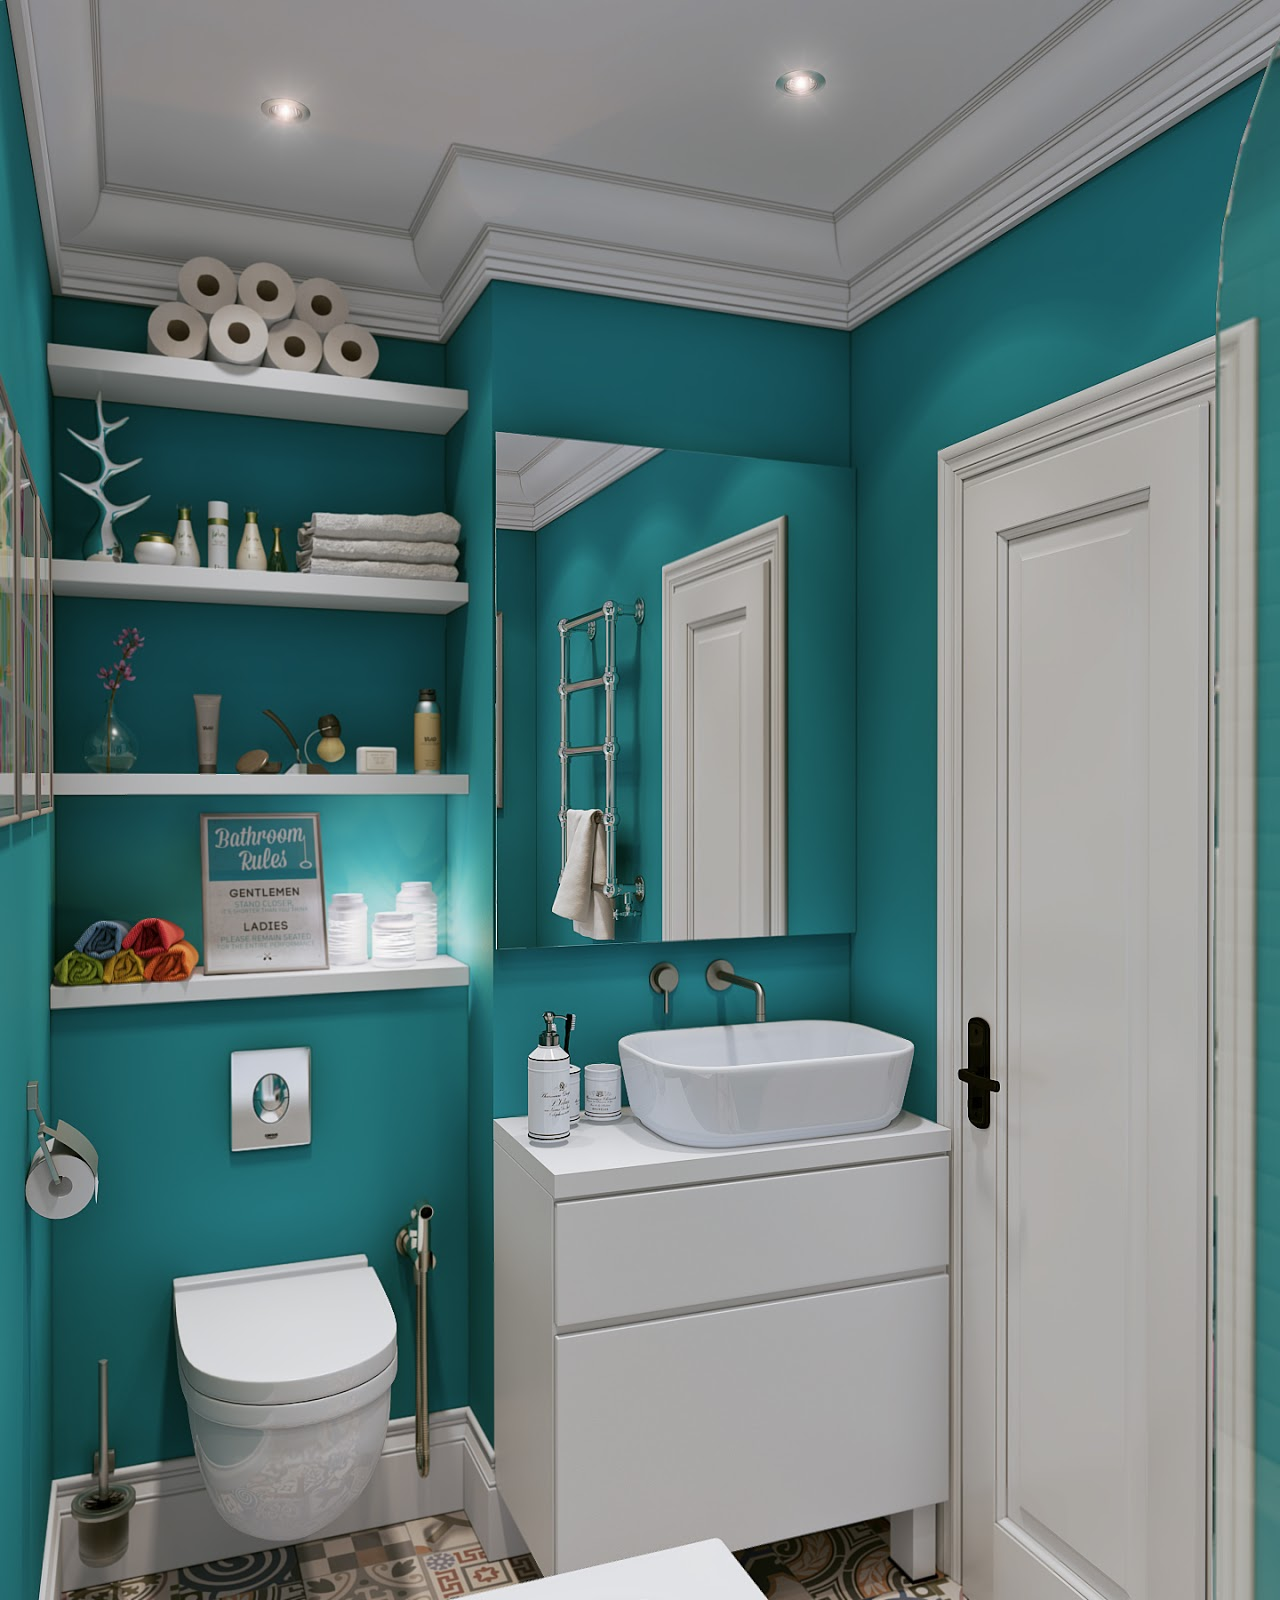 Bathroom Ideas Teal : Teal bathroom interior design ideas